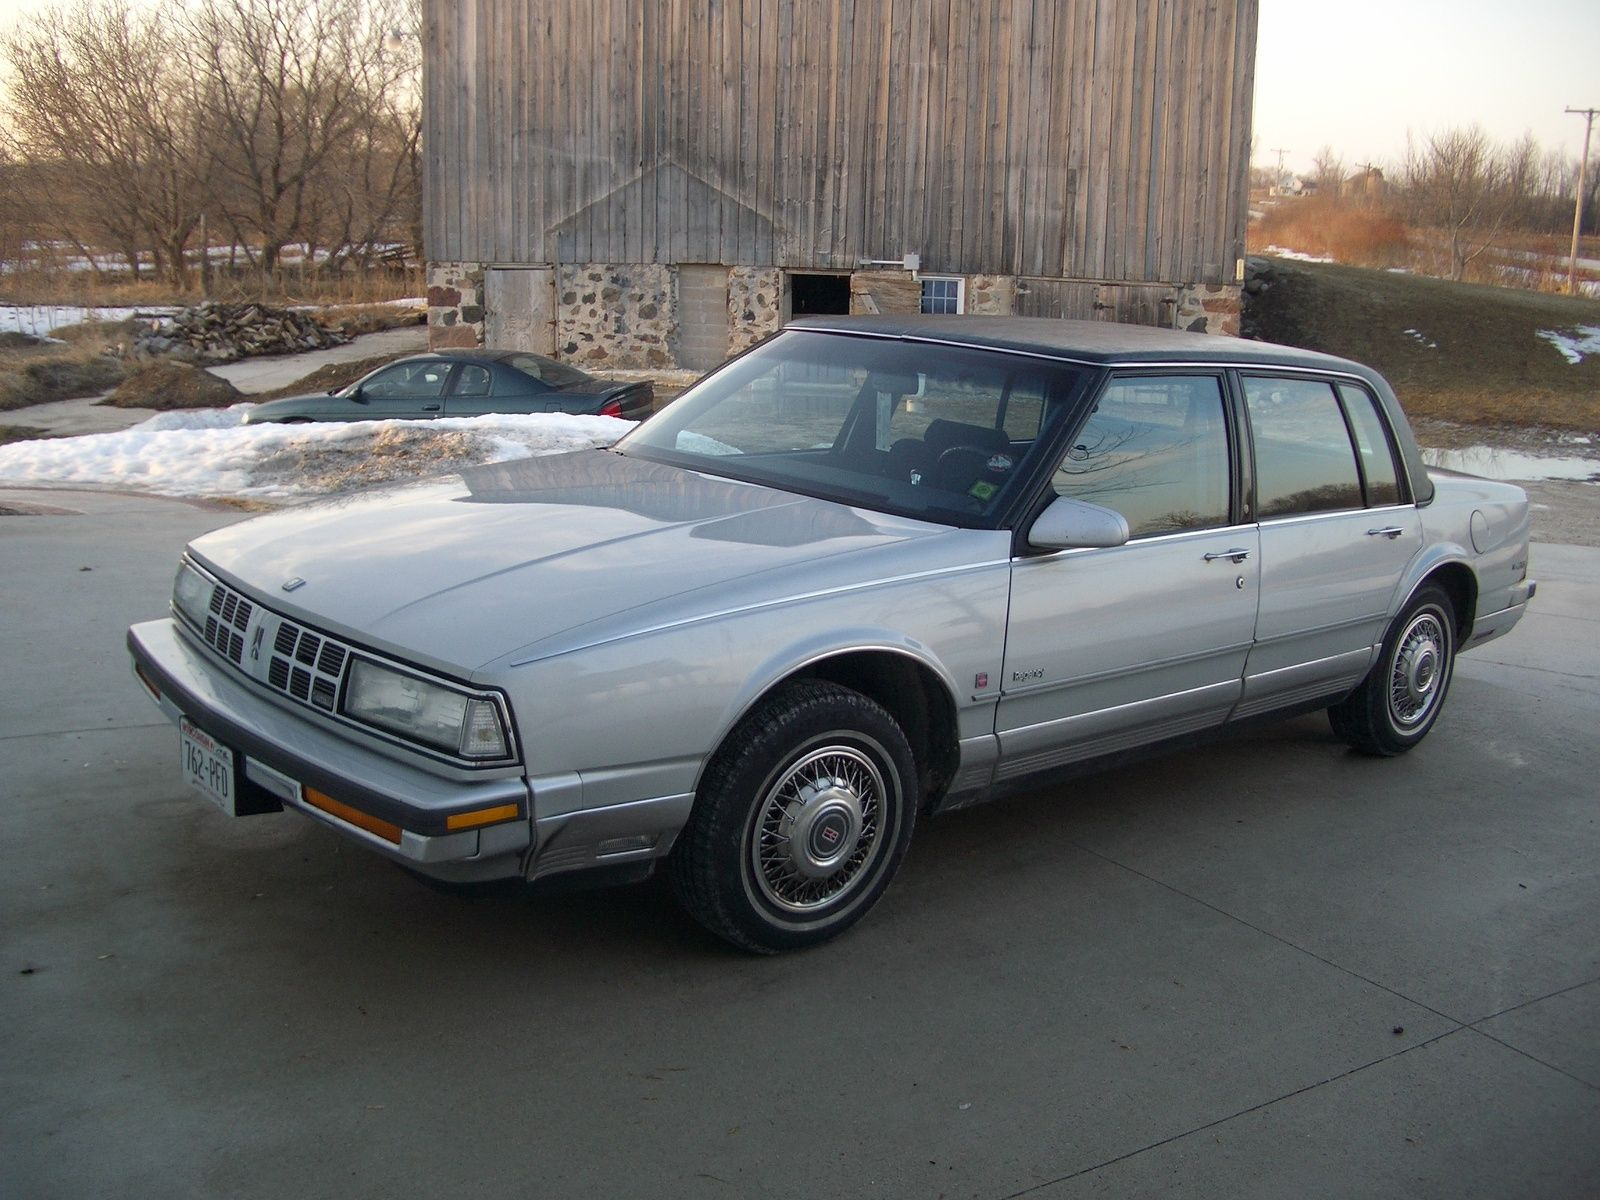 Picture Of 1990 Oldsmobile Ninety Eight 4 Dr Regency Brougham Sedan Oldsmobile Classic Cars Sedan